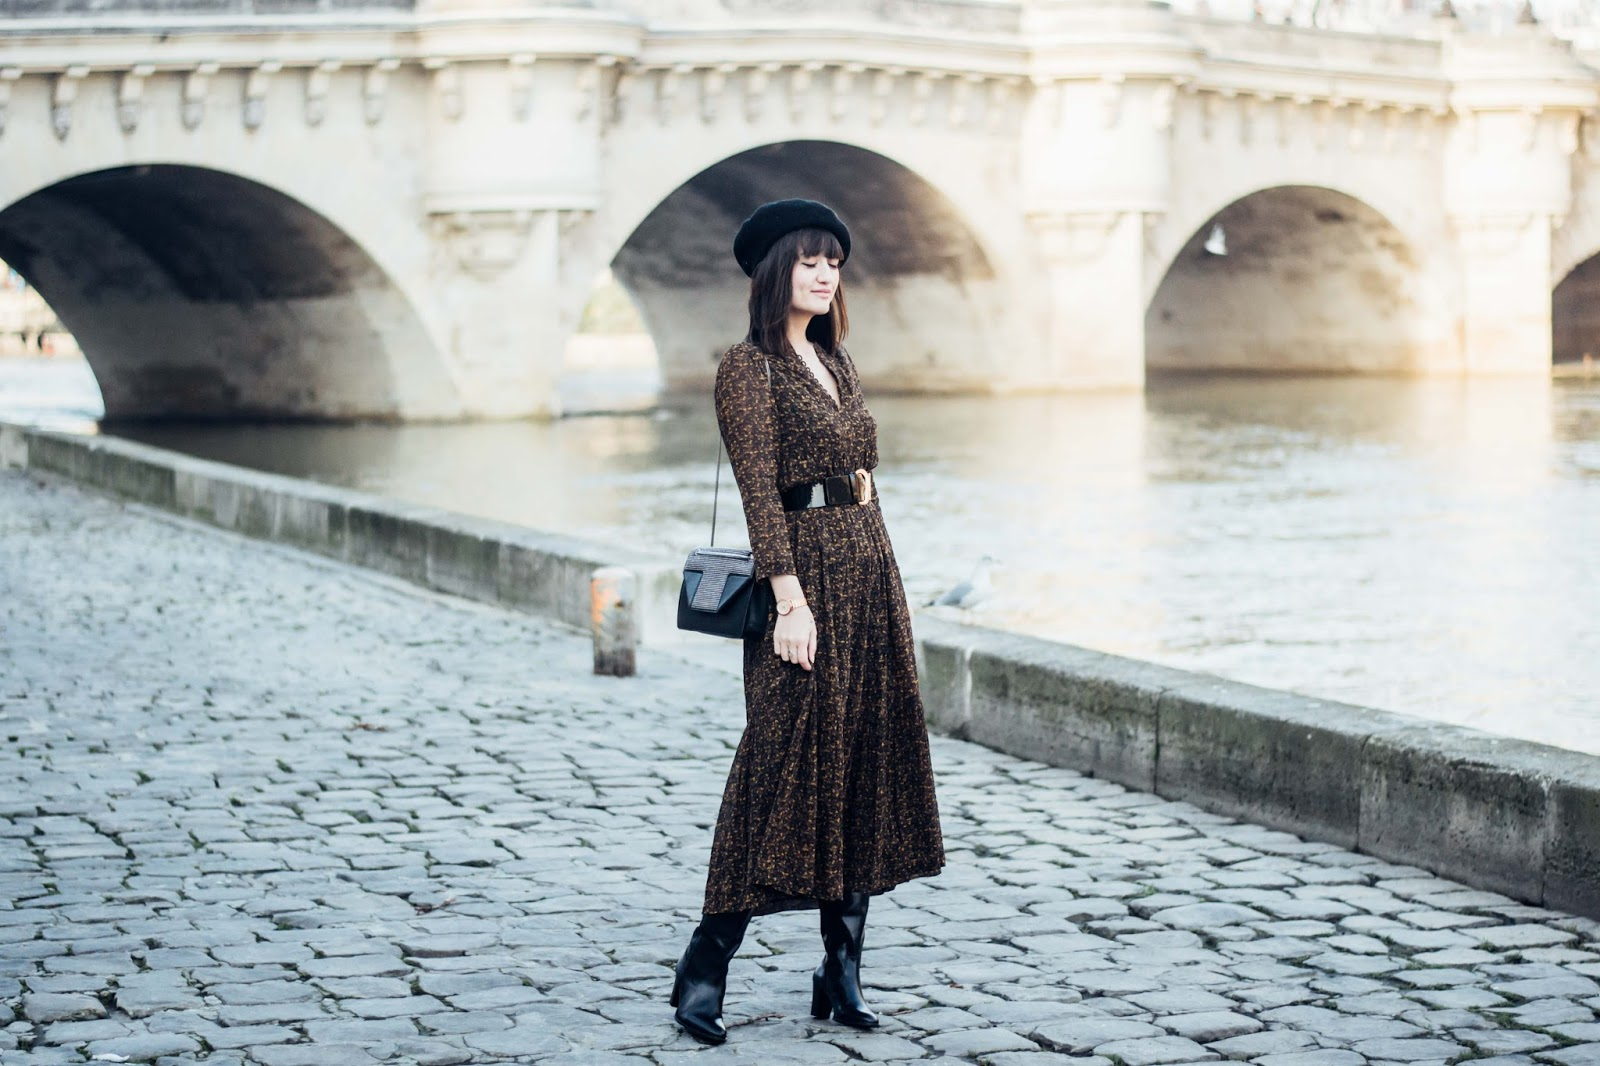 paris-styleblogger-look-fashion-mode-streetstyle-ootd-meetmeinparee